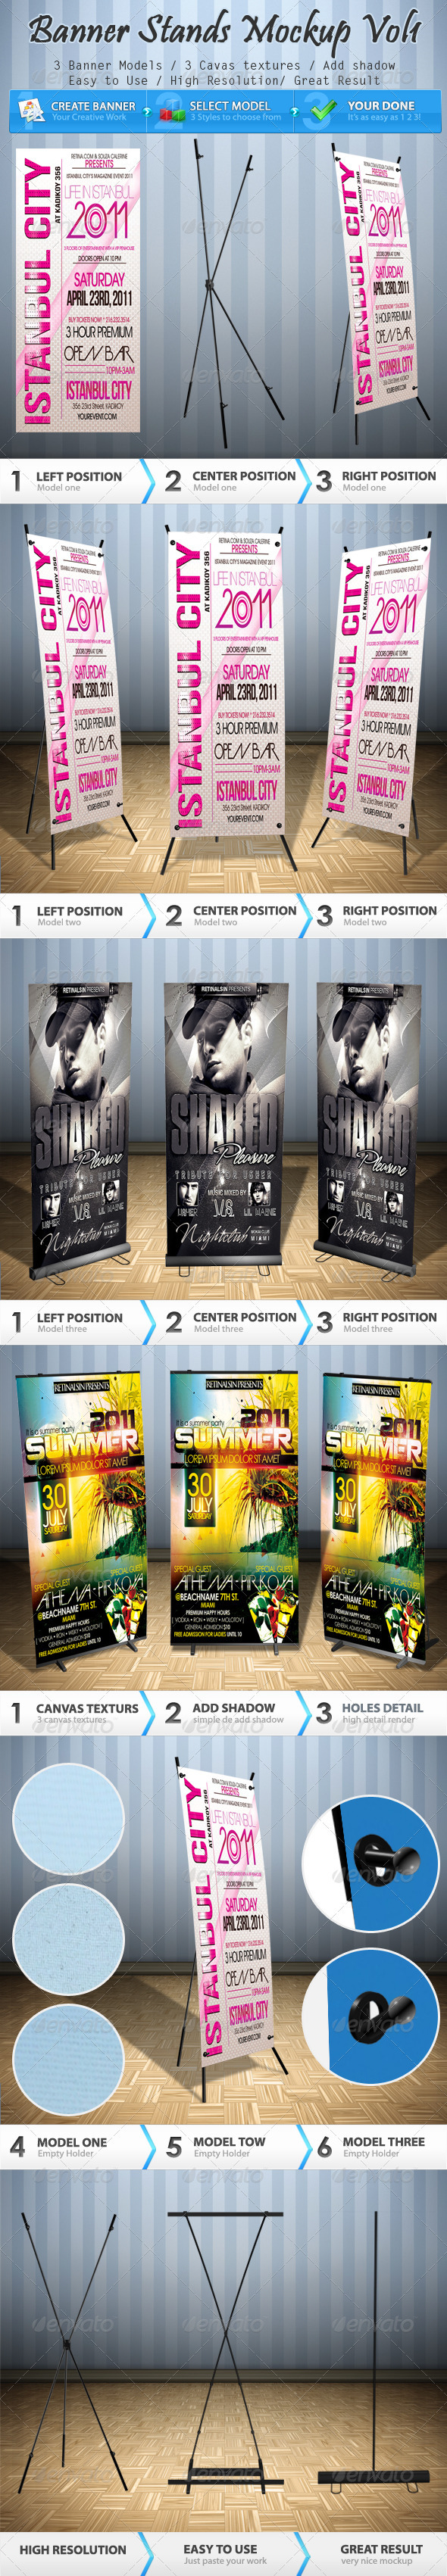 Banner Stands Mock-up Volume 1 - Signage Print